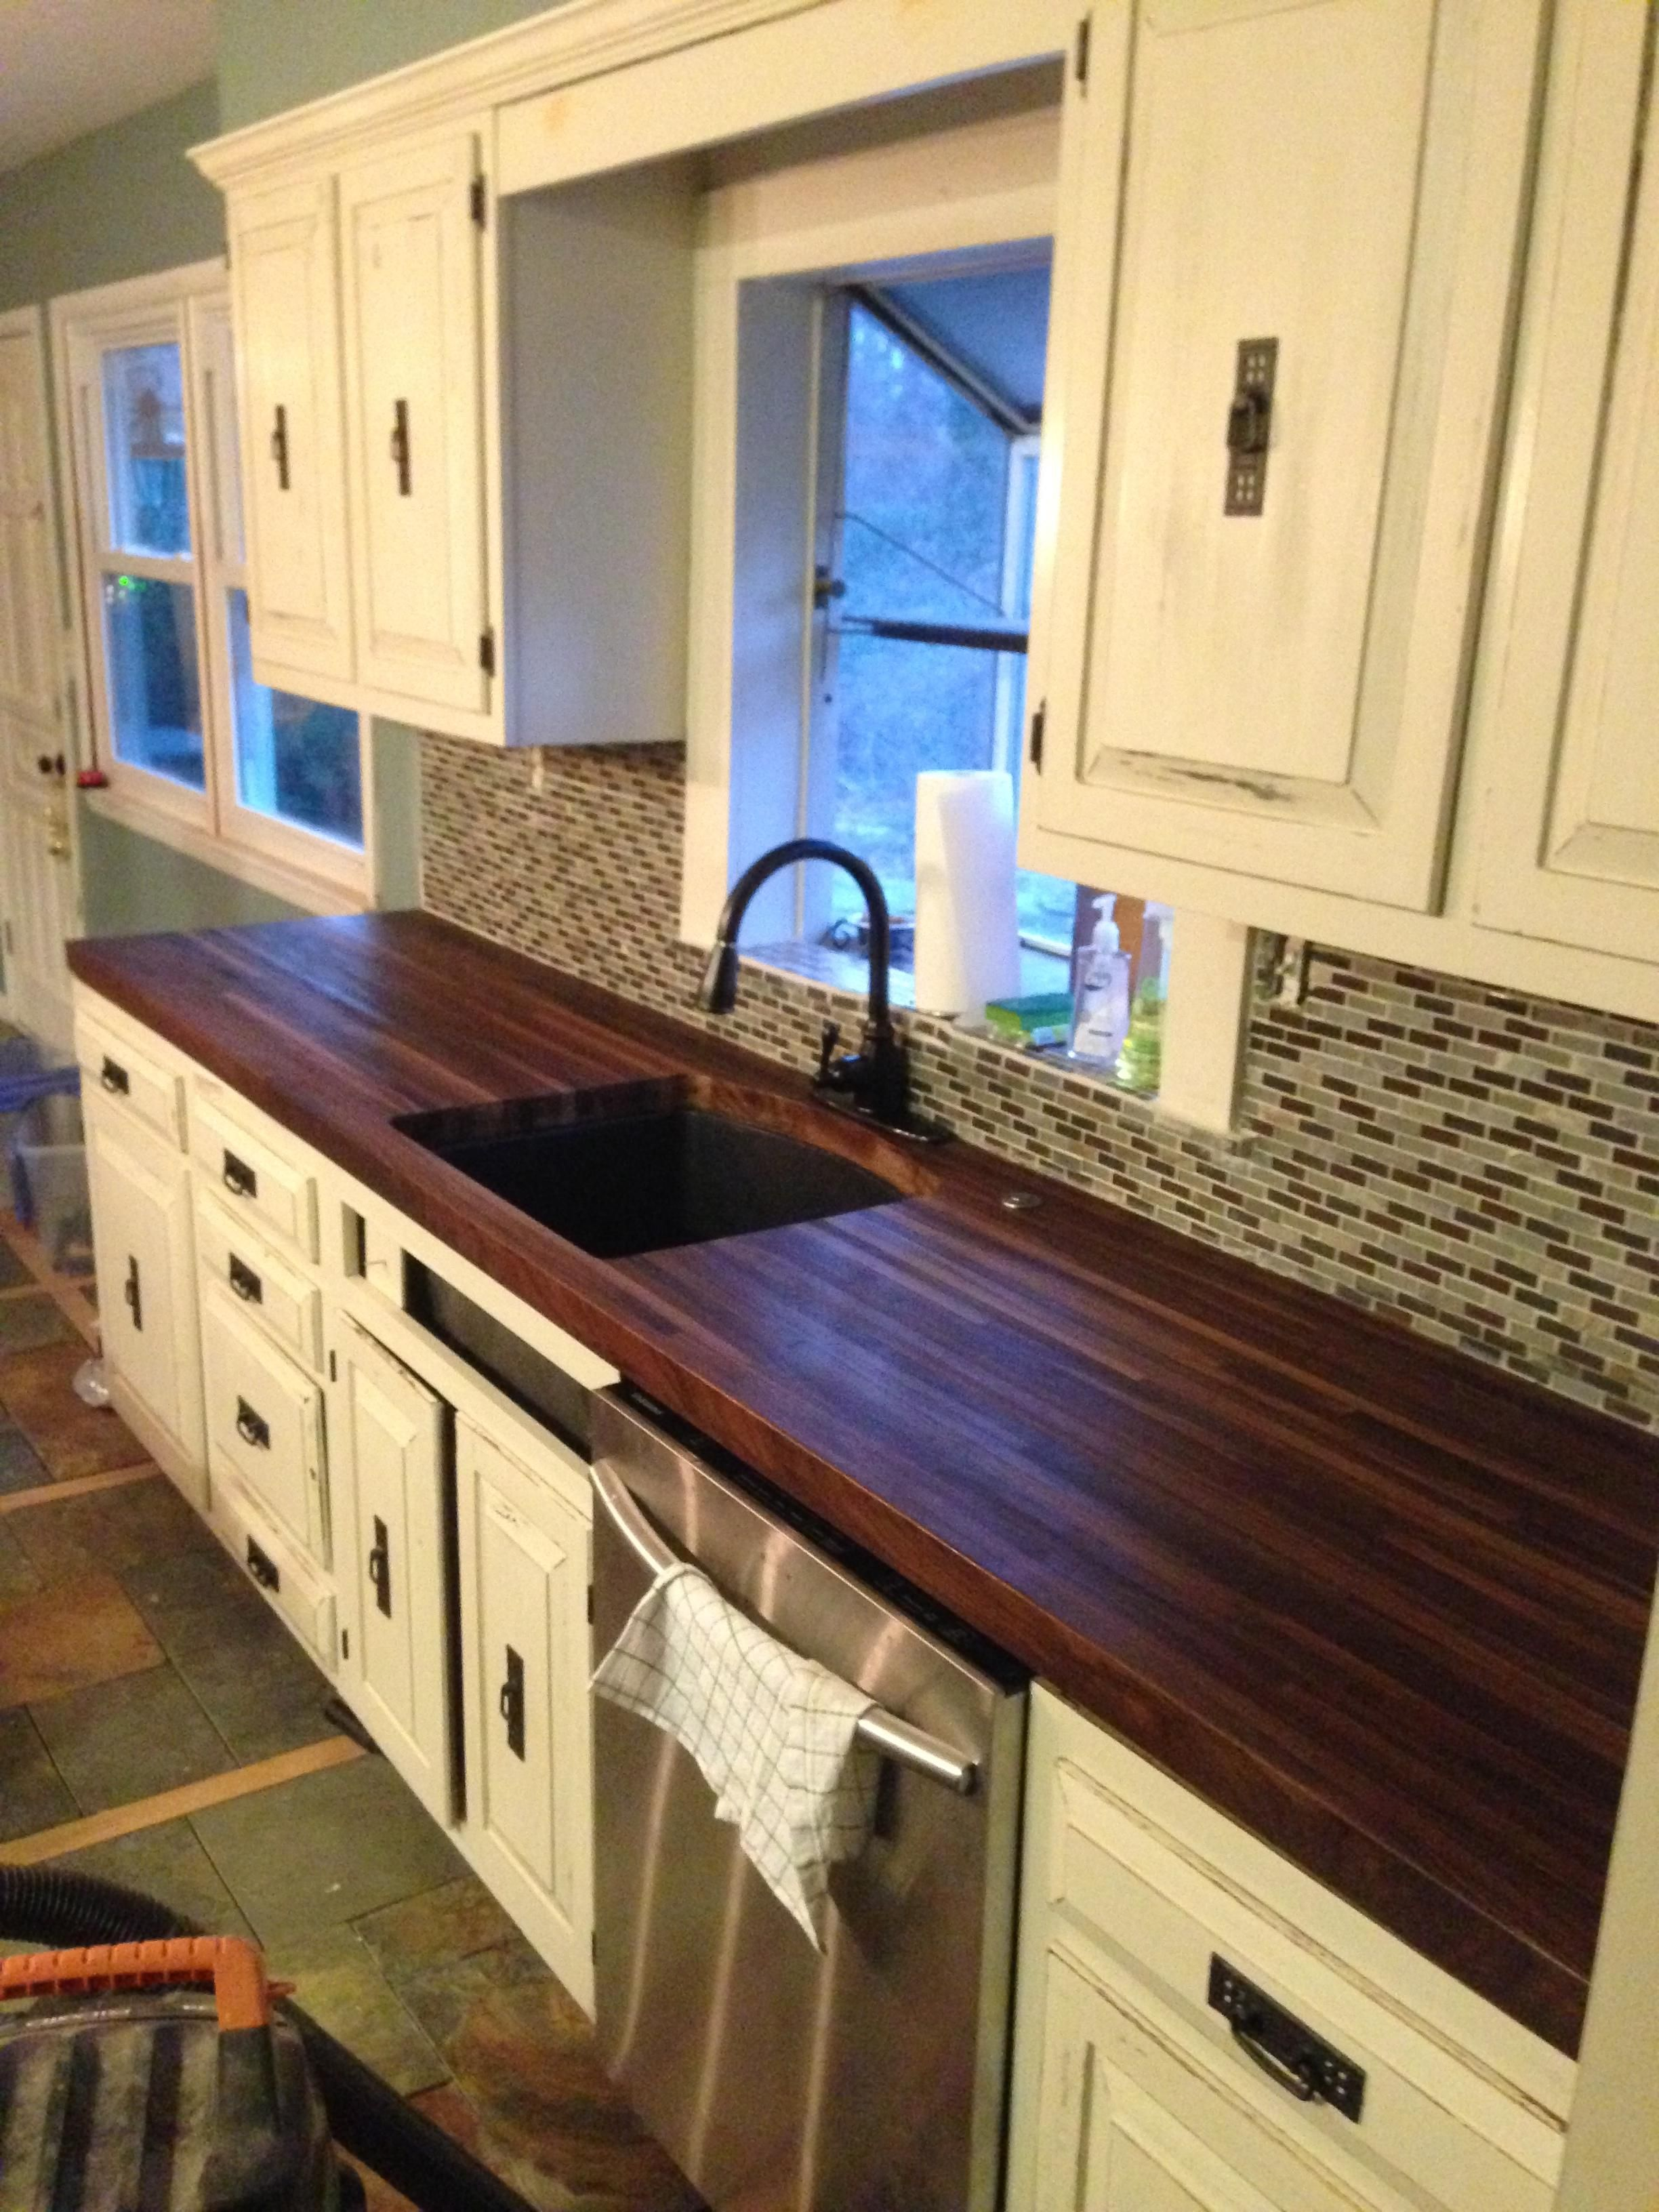 replacing kitchen countertops Built a pair of black walnut butcher block countertops to replace the awful laminate in the house we just bought